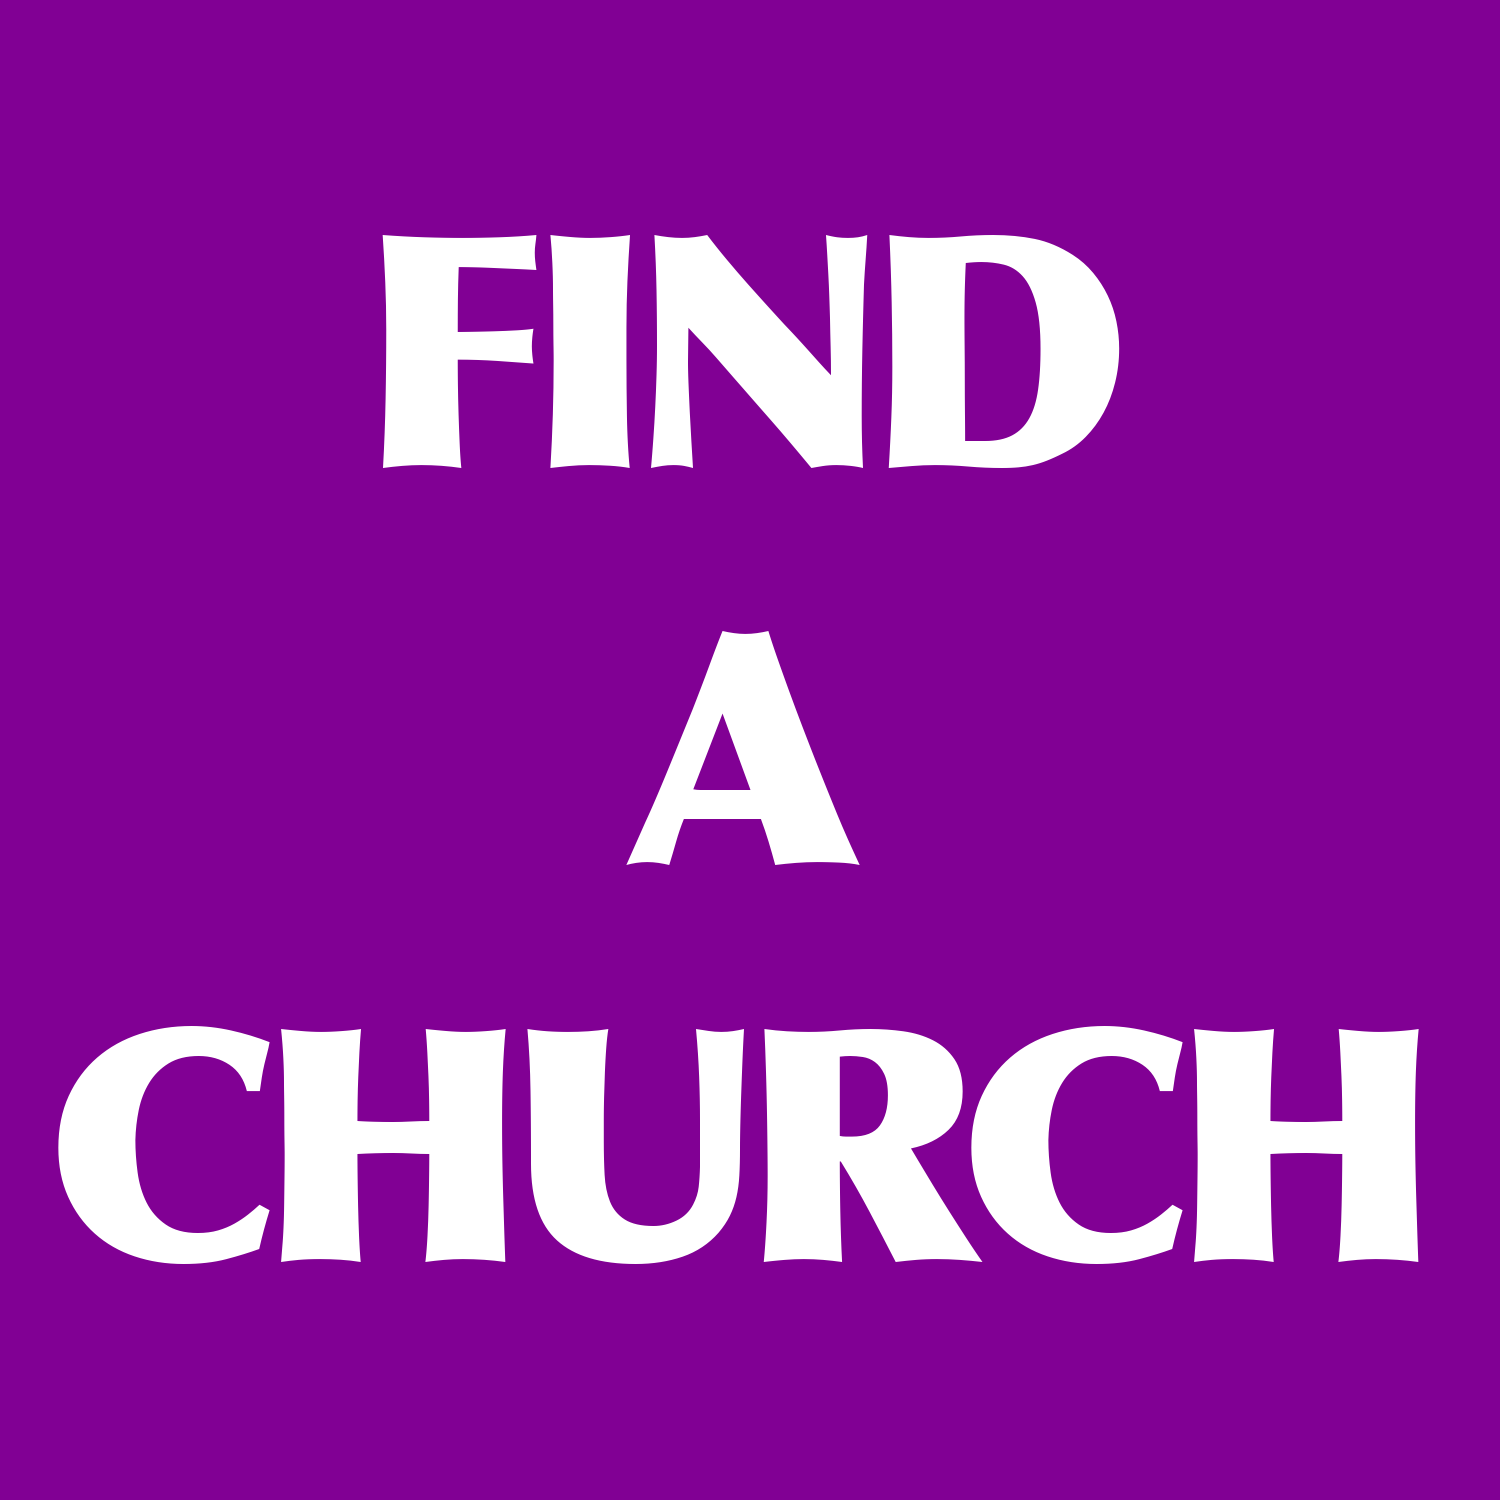 FIND A CHURCH